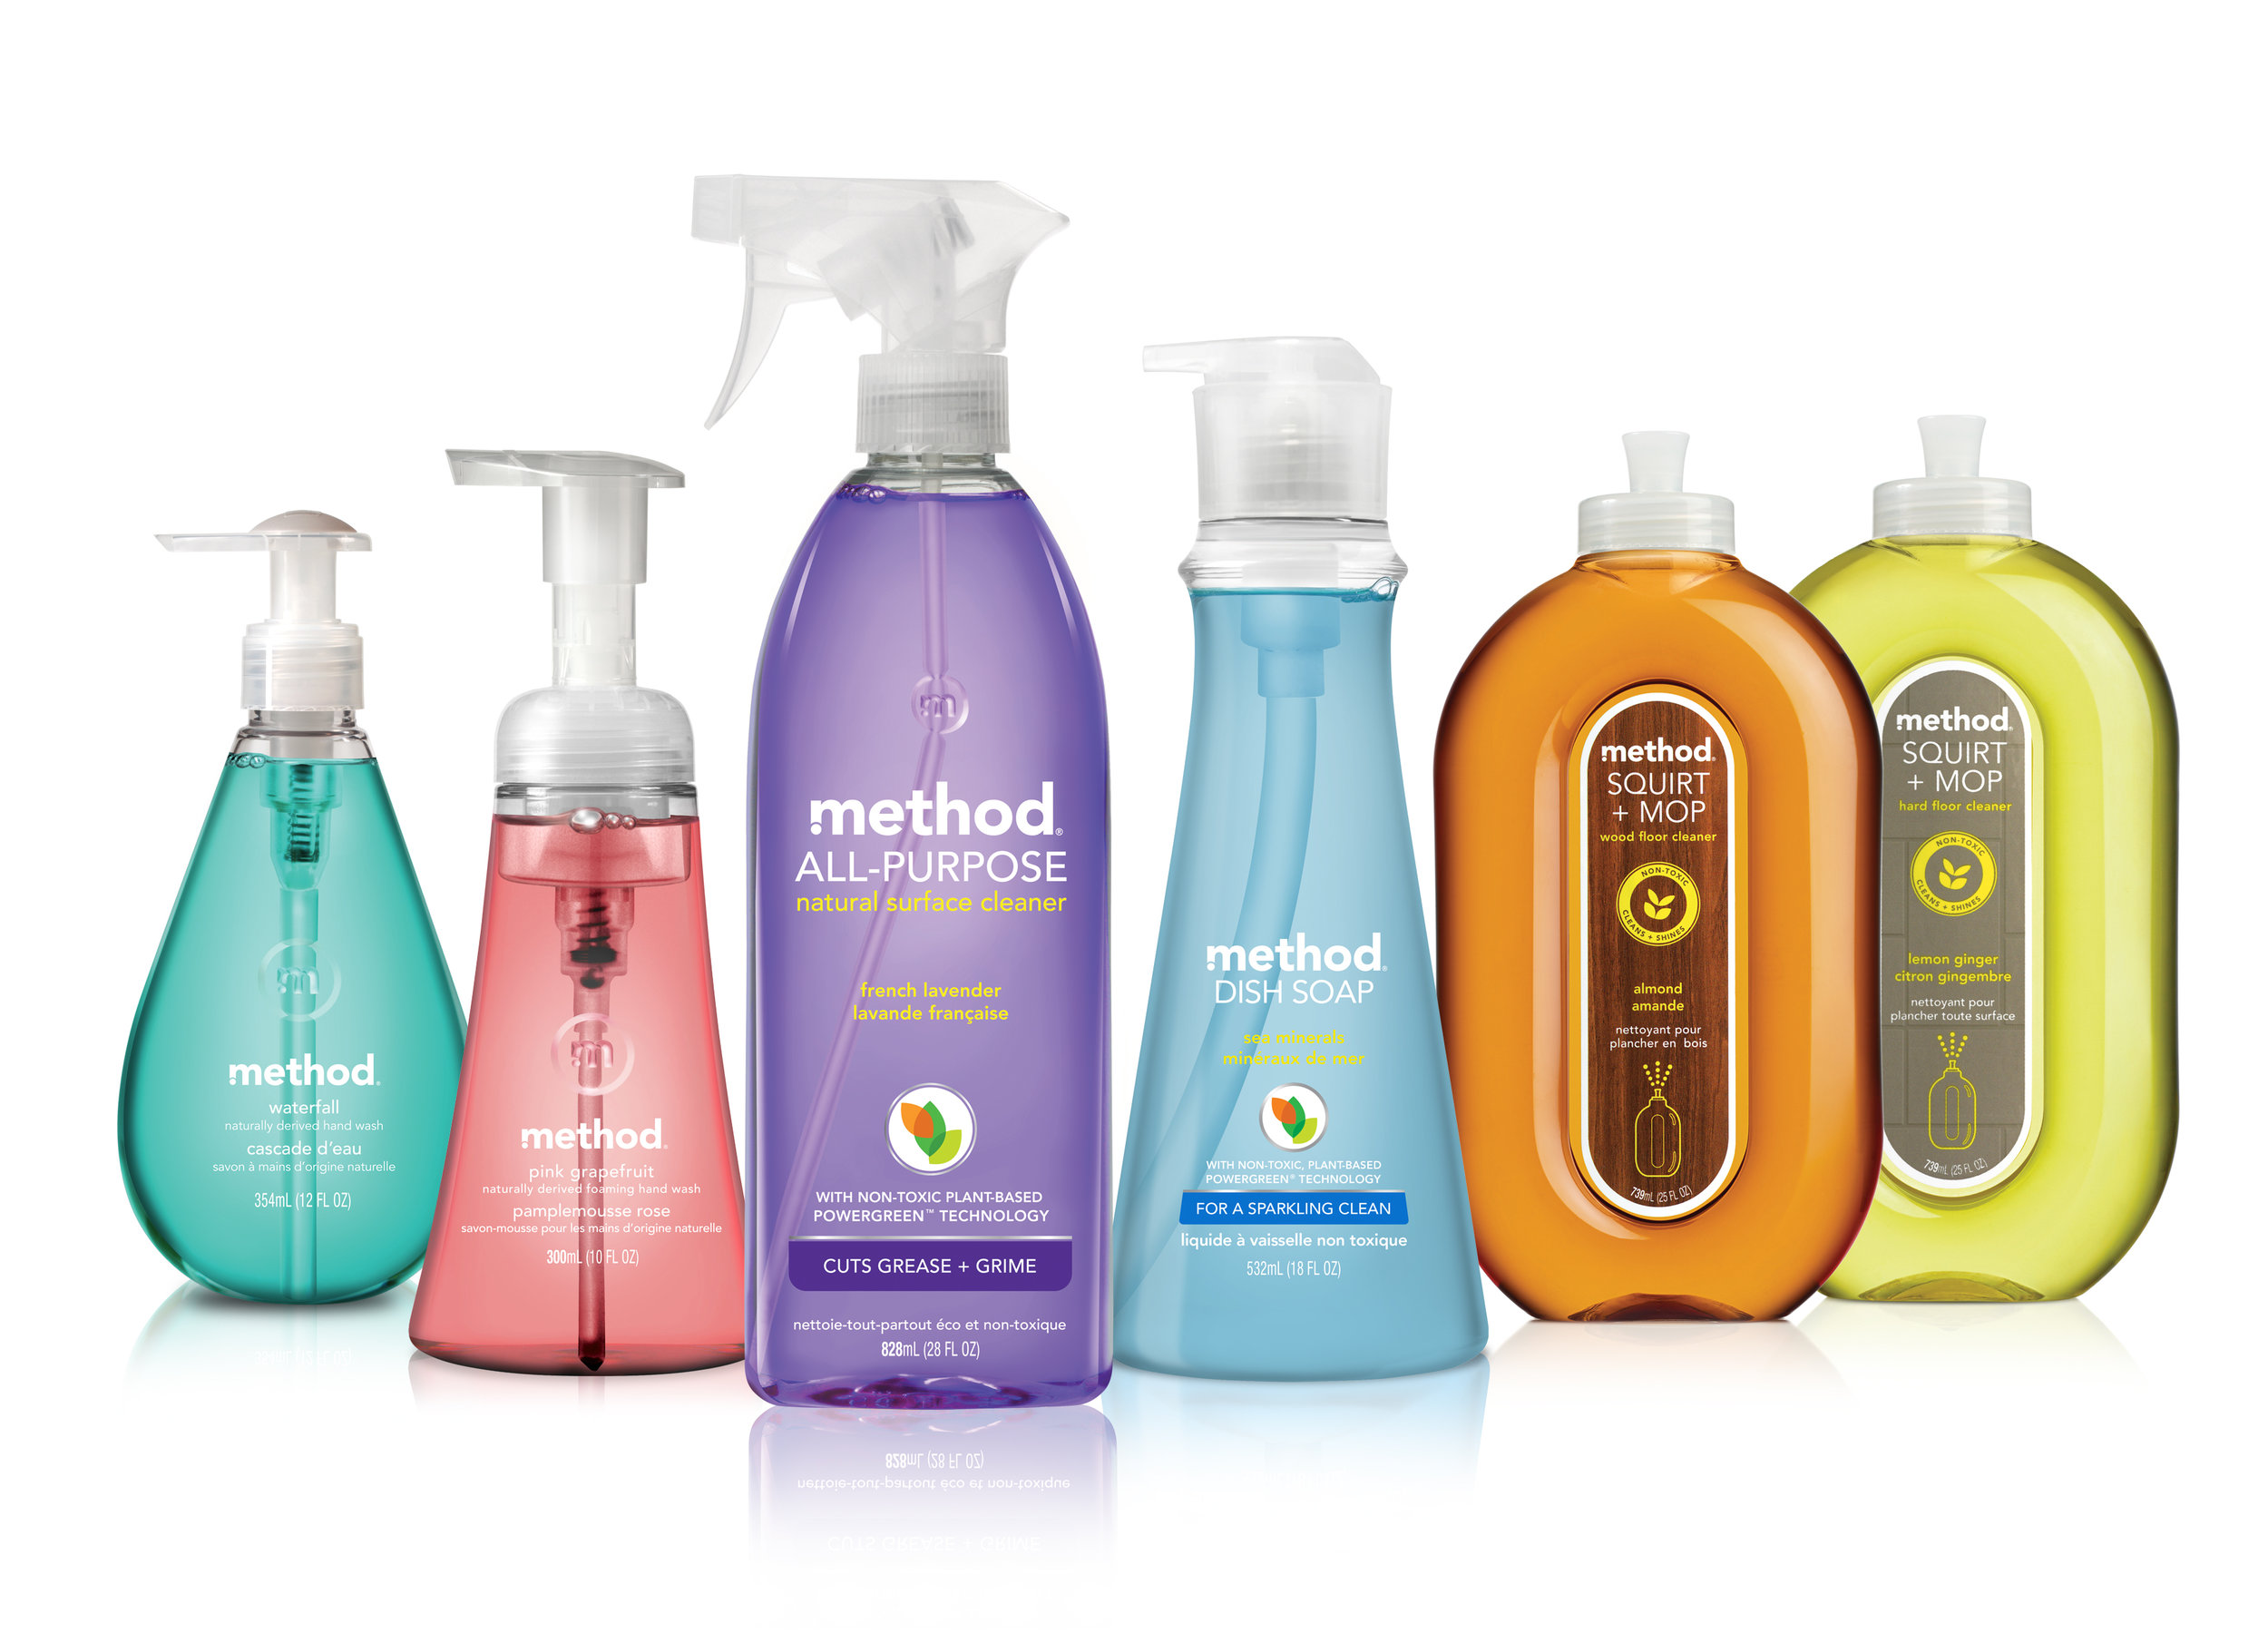 Method - This is a plant-based cleaning solutions that is green and environmental from the products up to the packaging and logistics. This is also perfectly formulated to make sure that it is safe, but is still a strong cleaning agent against germs and dirt.